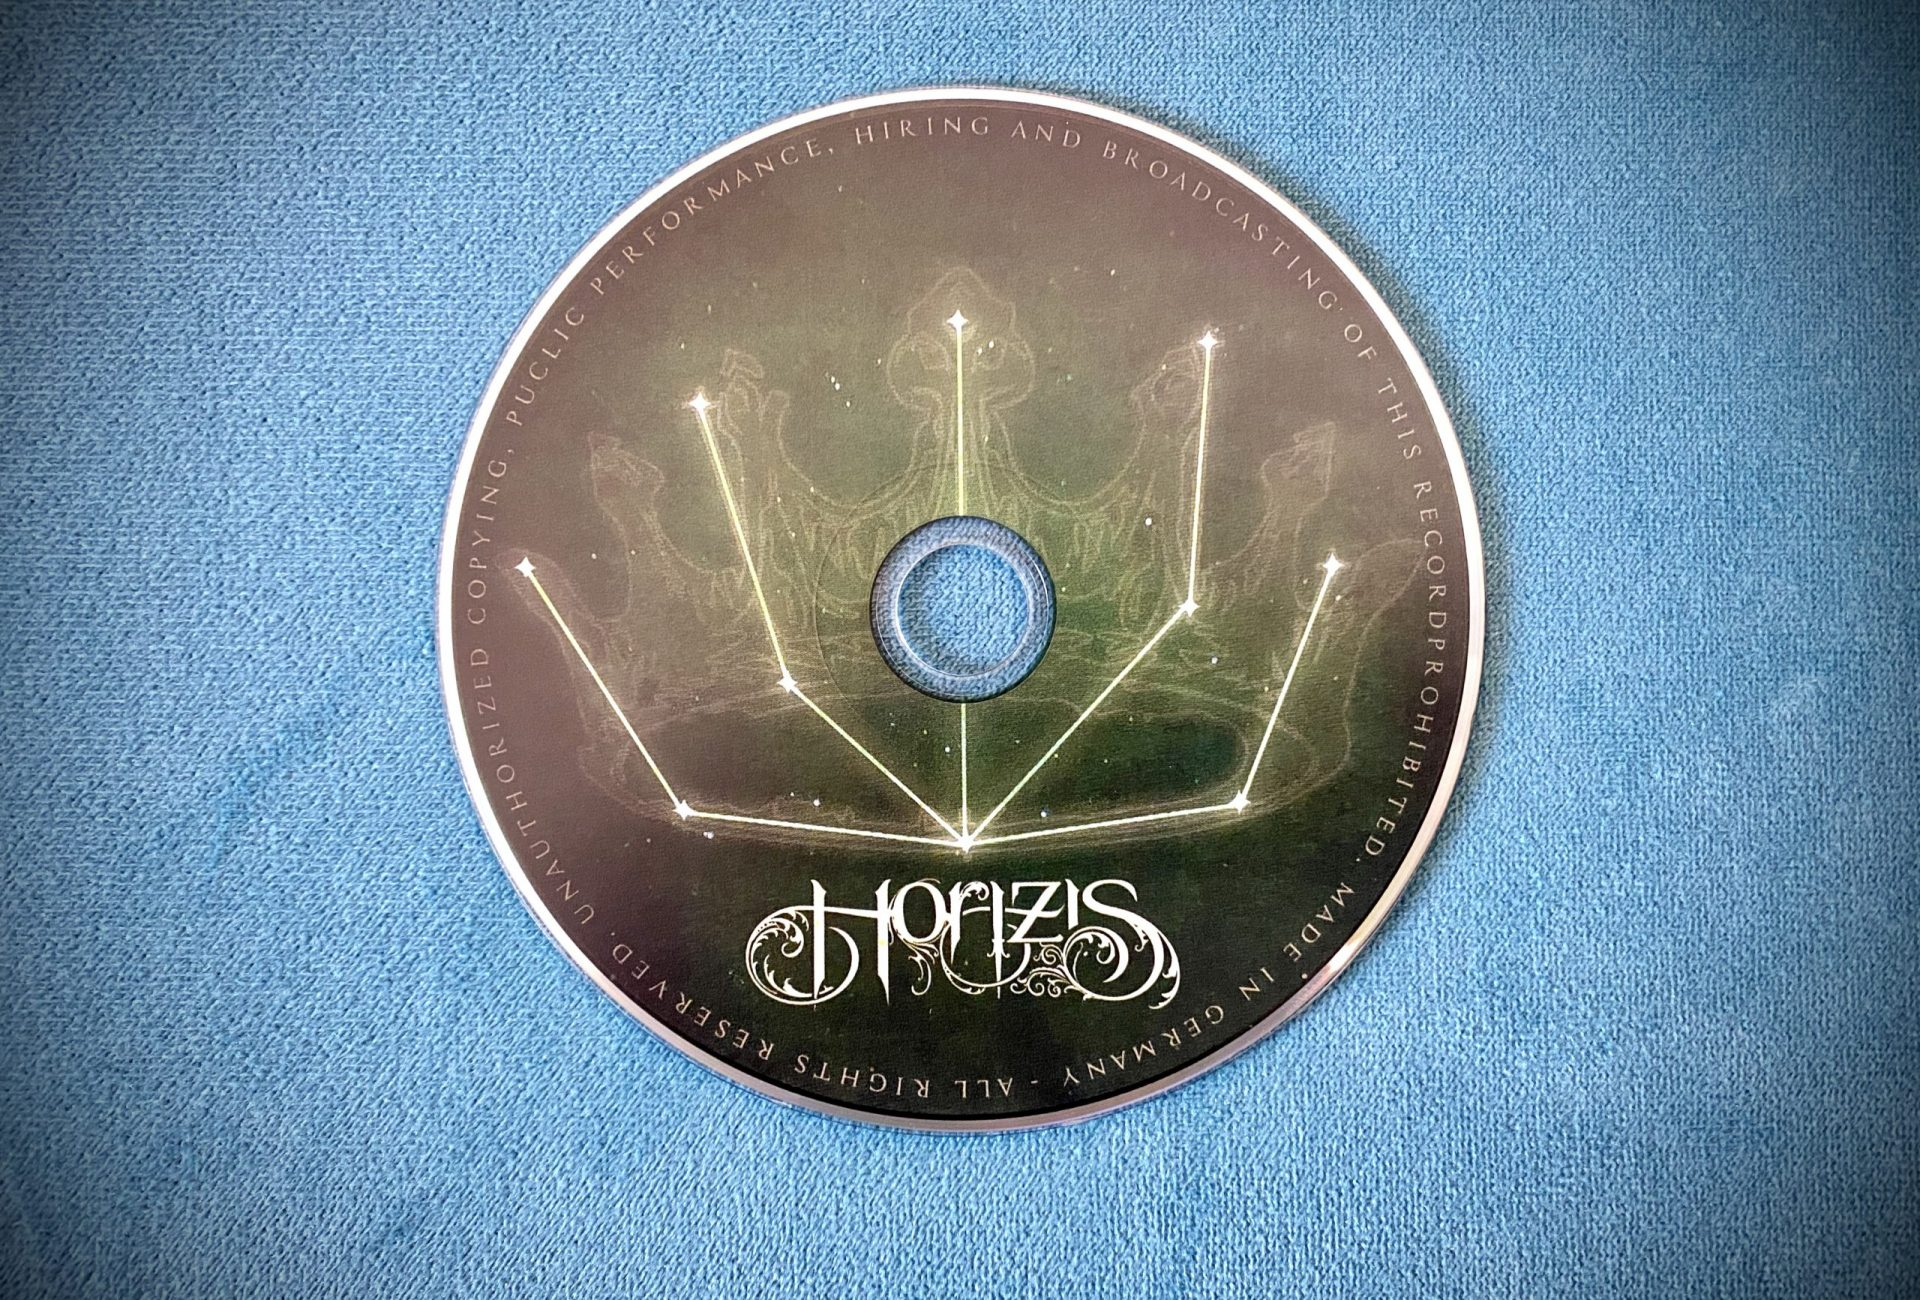 HLTC CD only